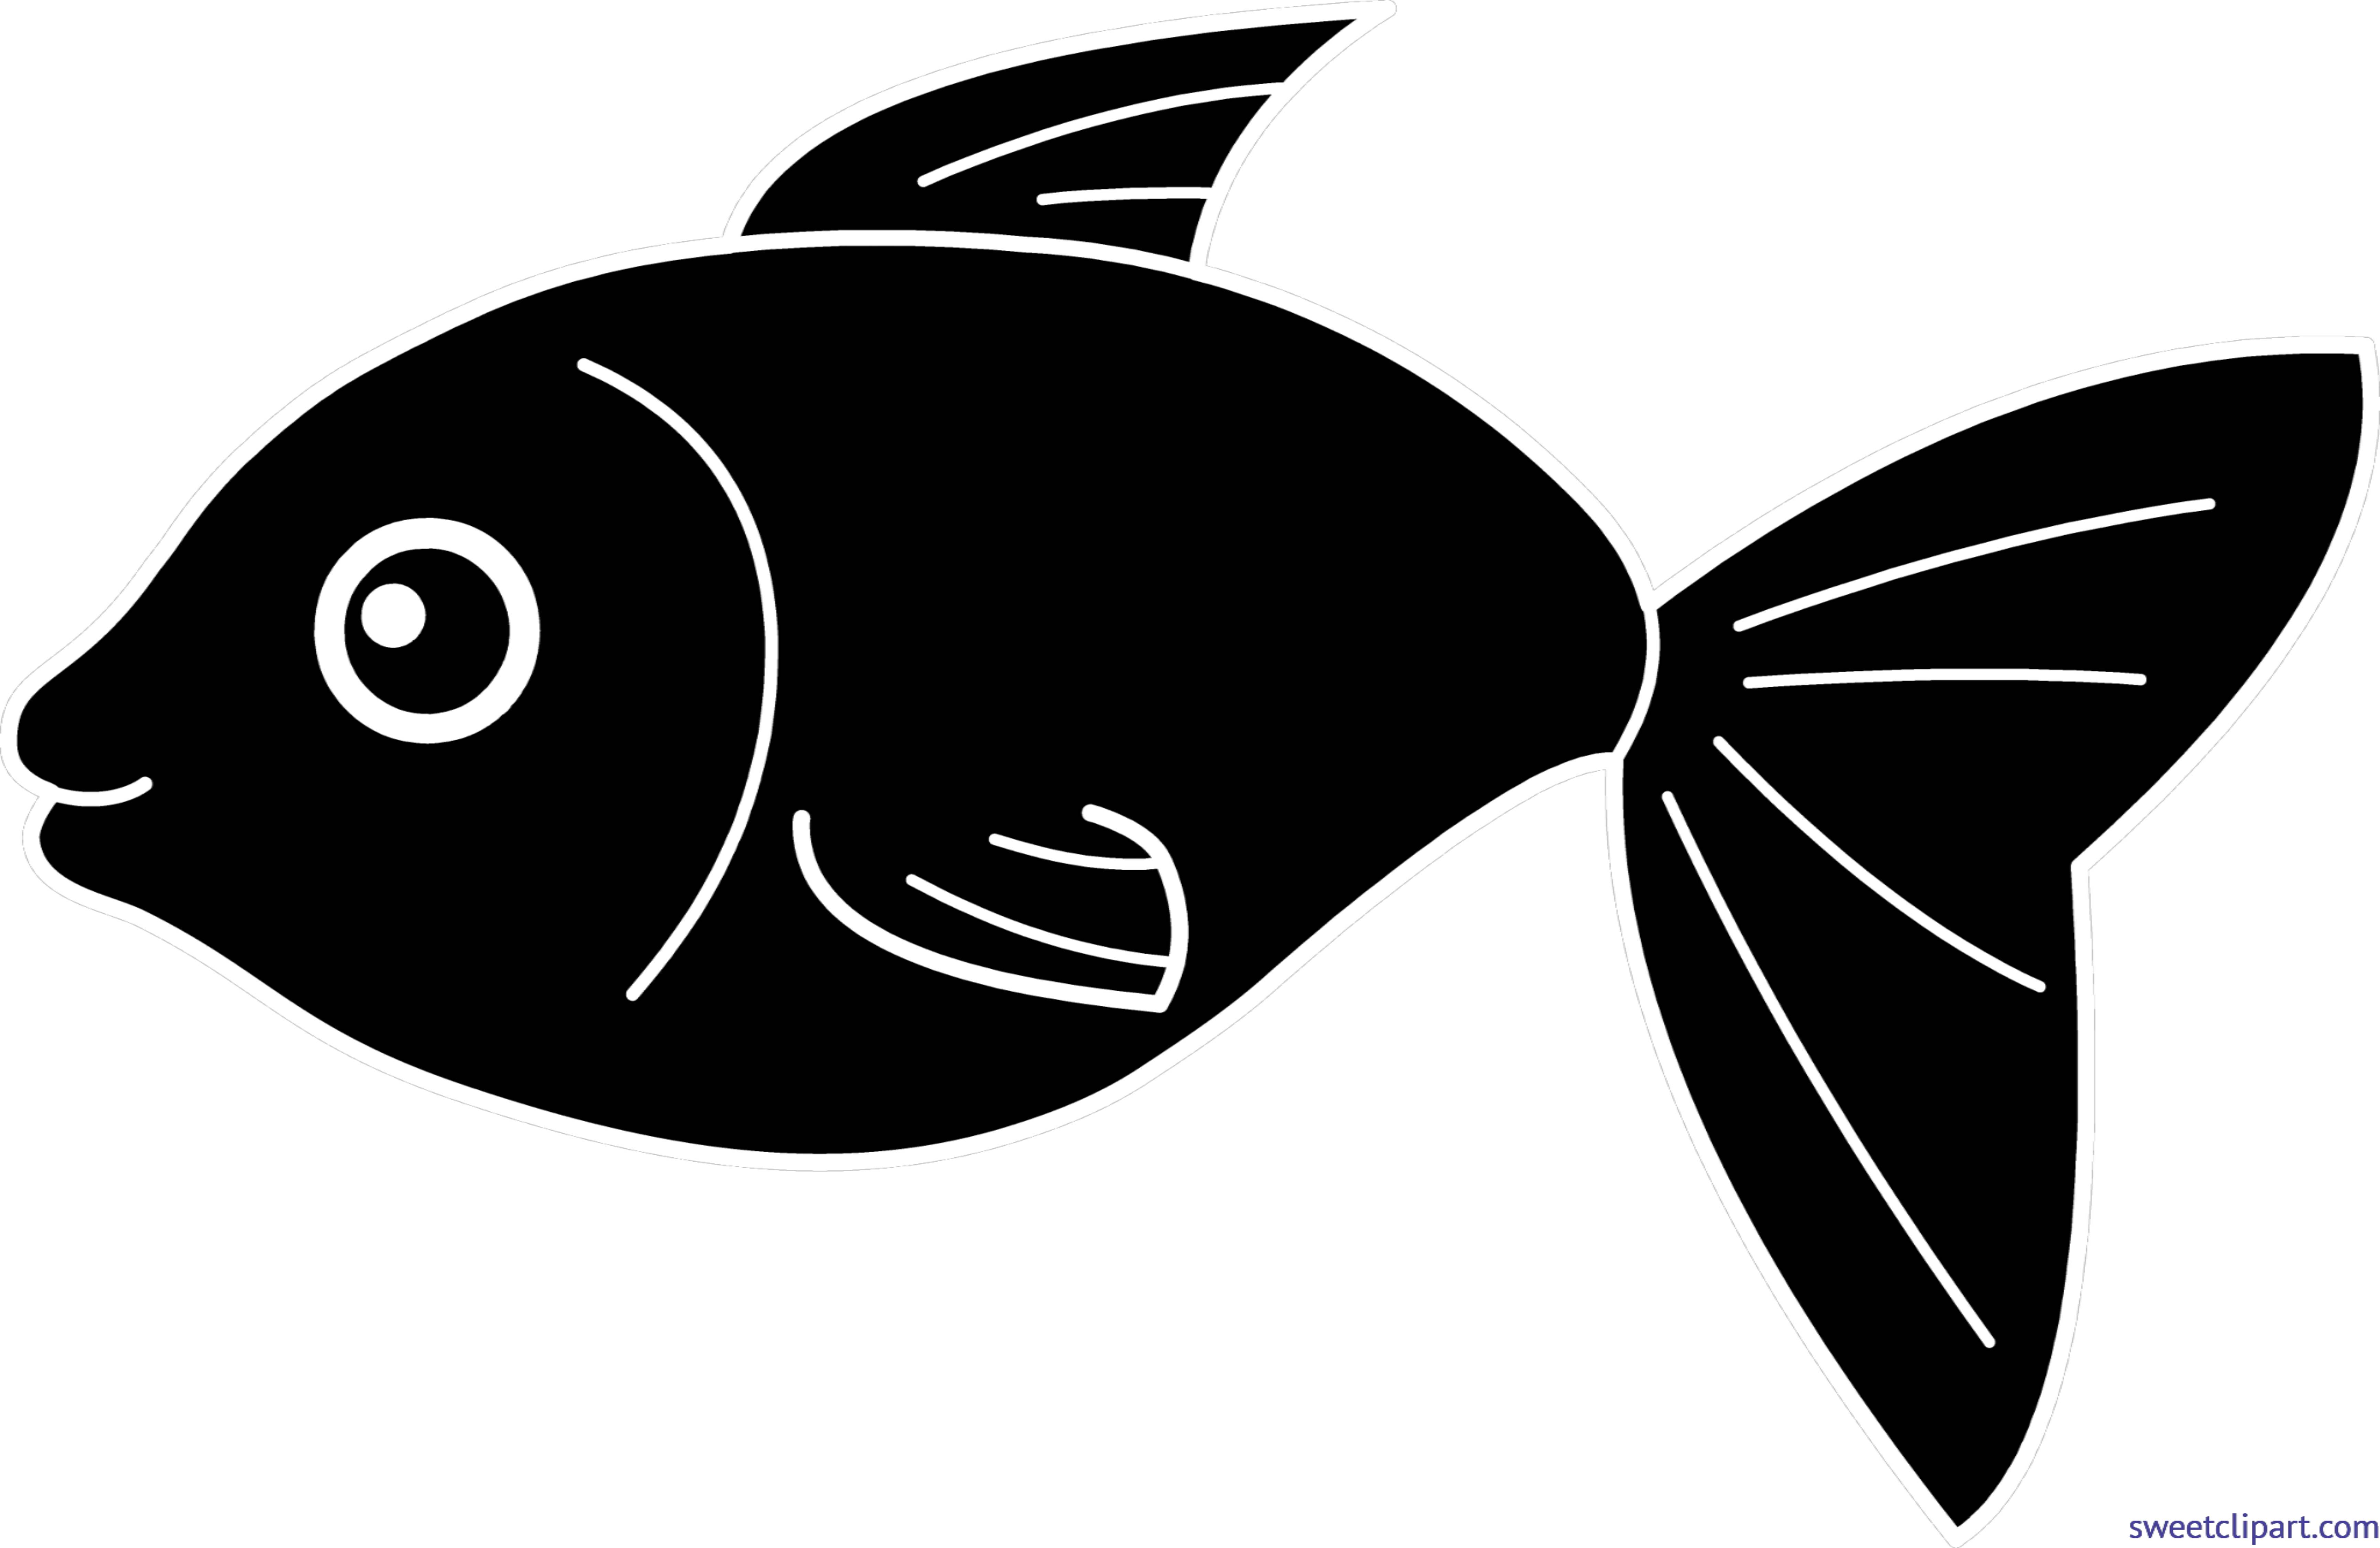 Lips the fish clipart picture royalty free download Happy Black Fish Clip Art - Sweet Clip Art picture royalty free download